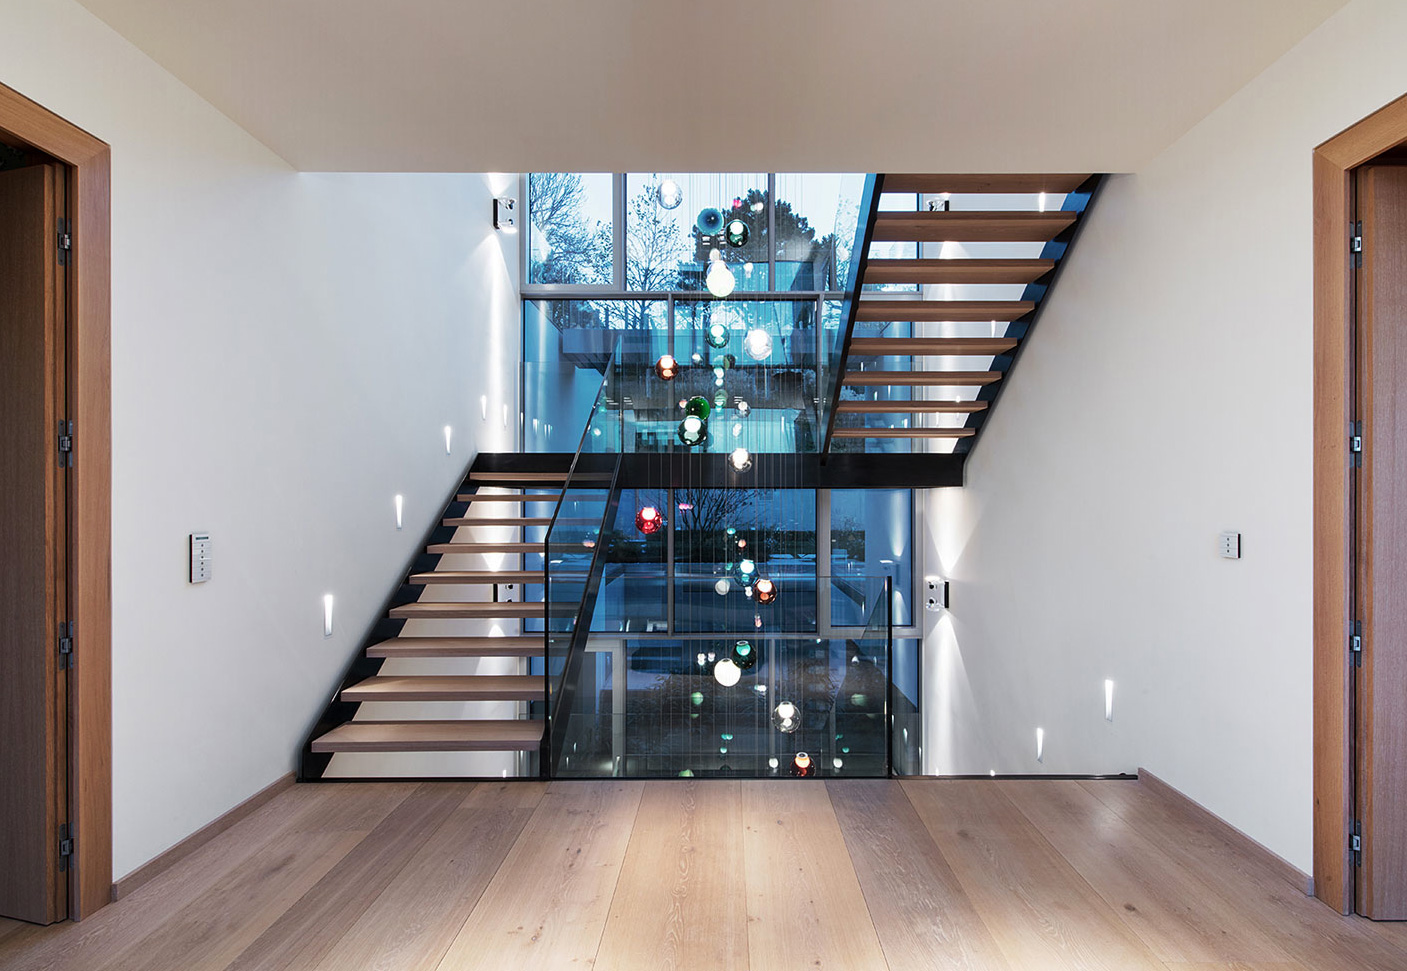 The Bocci 28 chandelier is pleasing from all floors